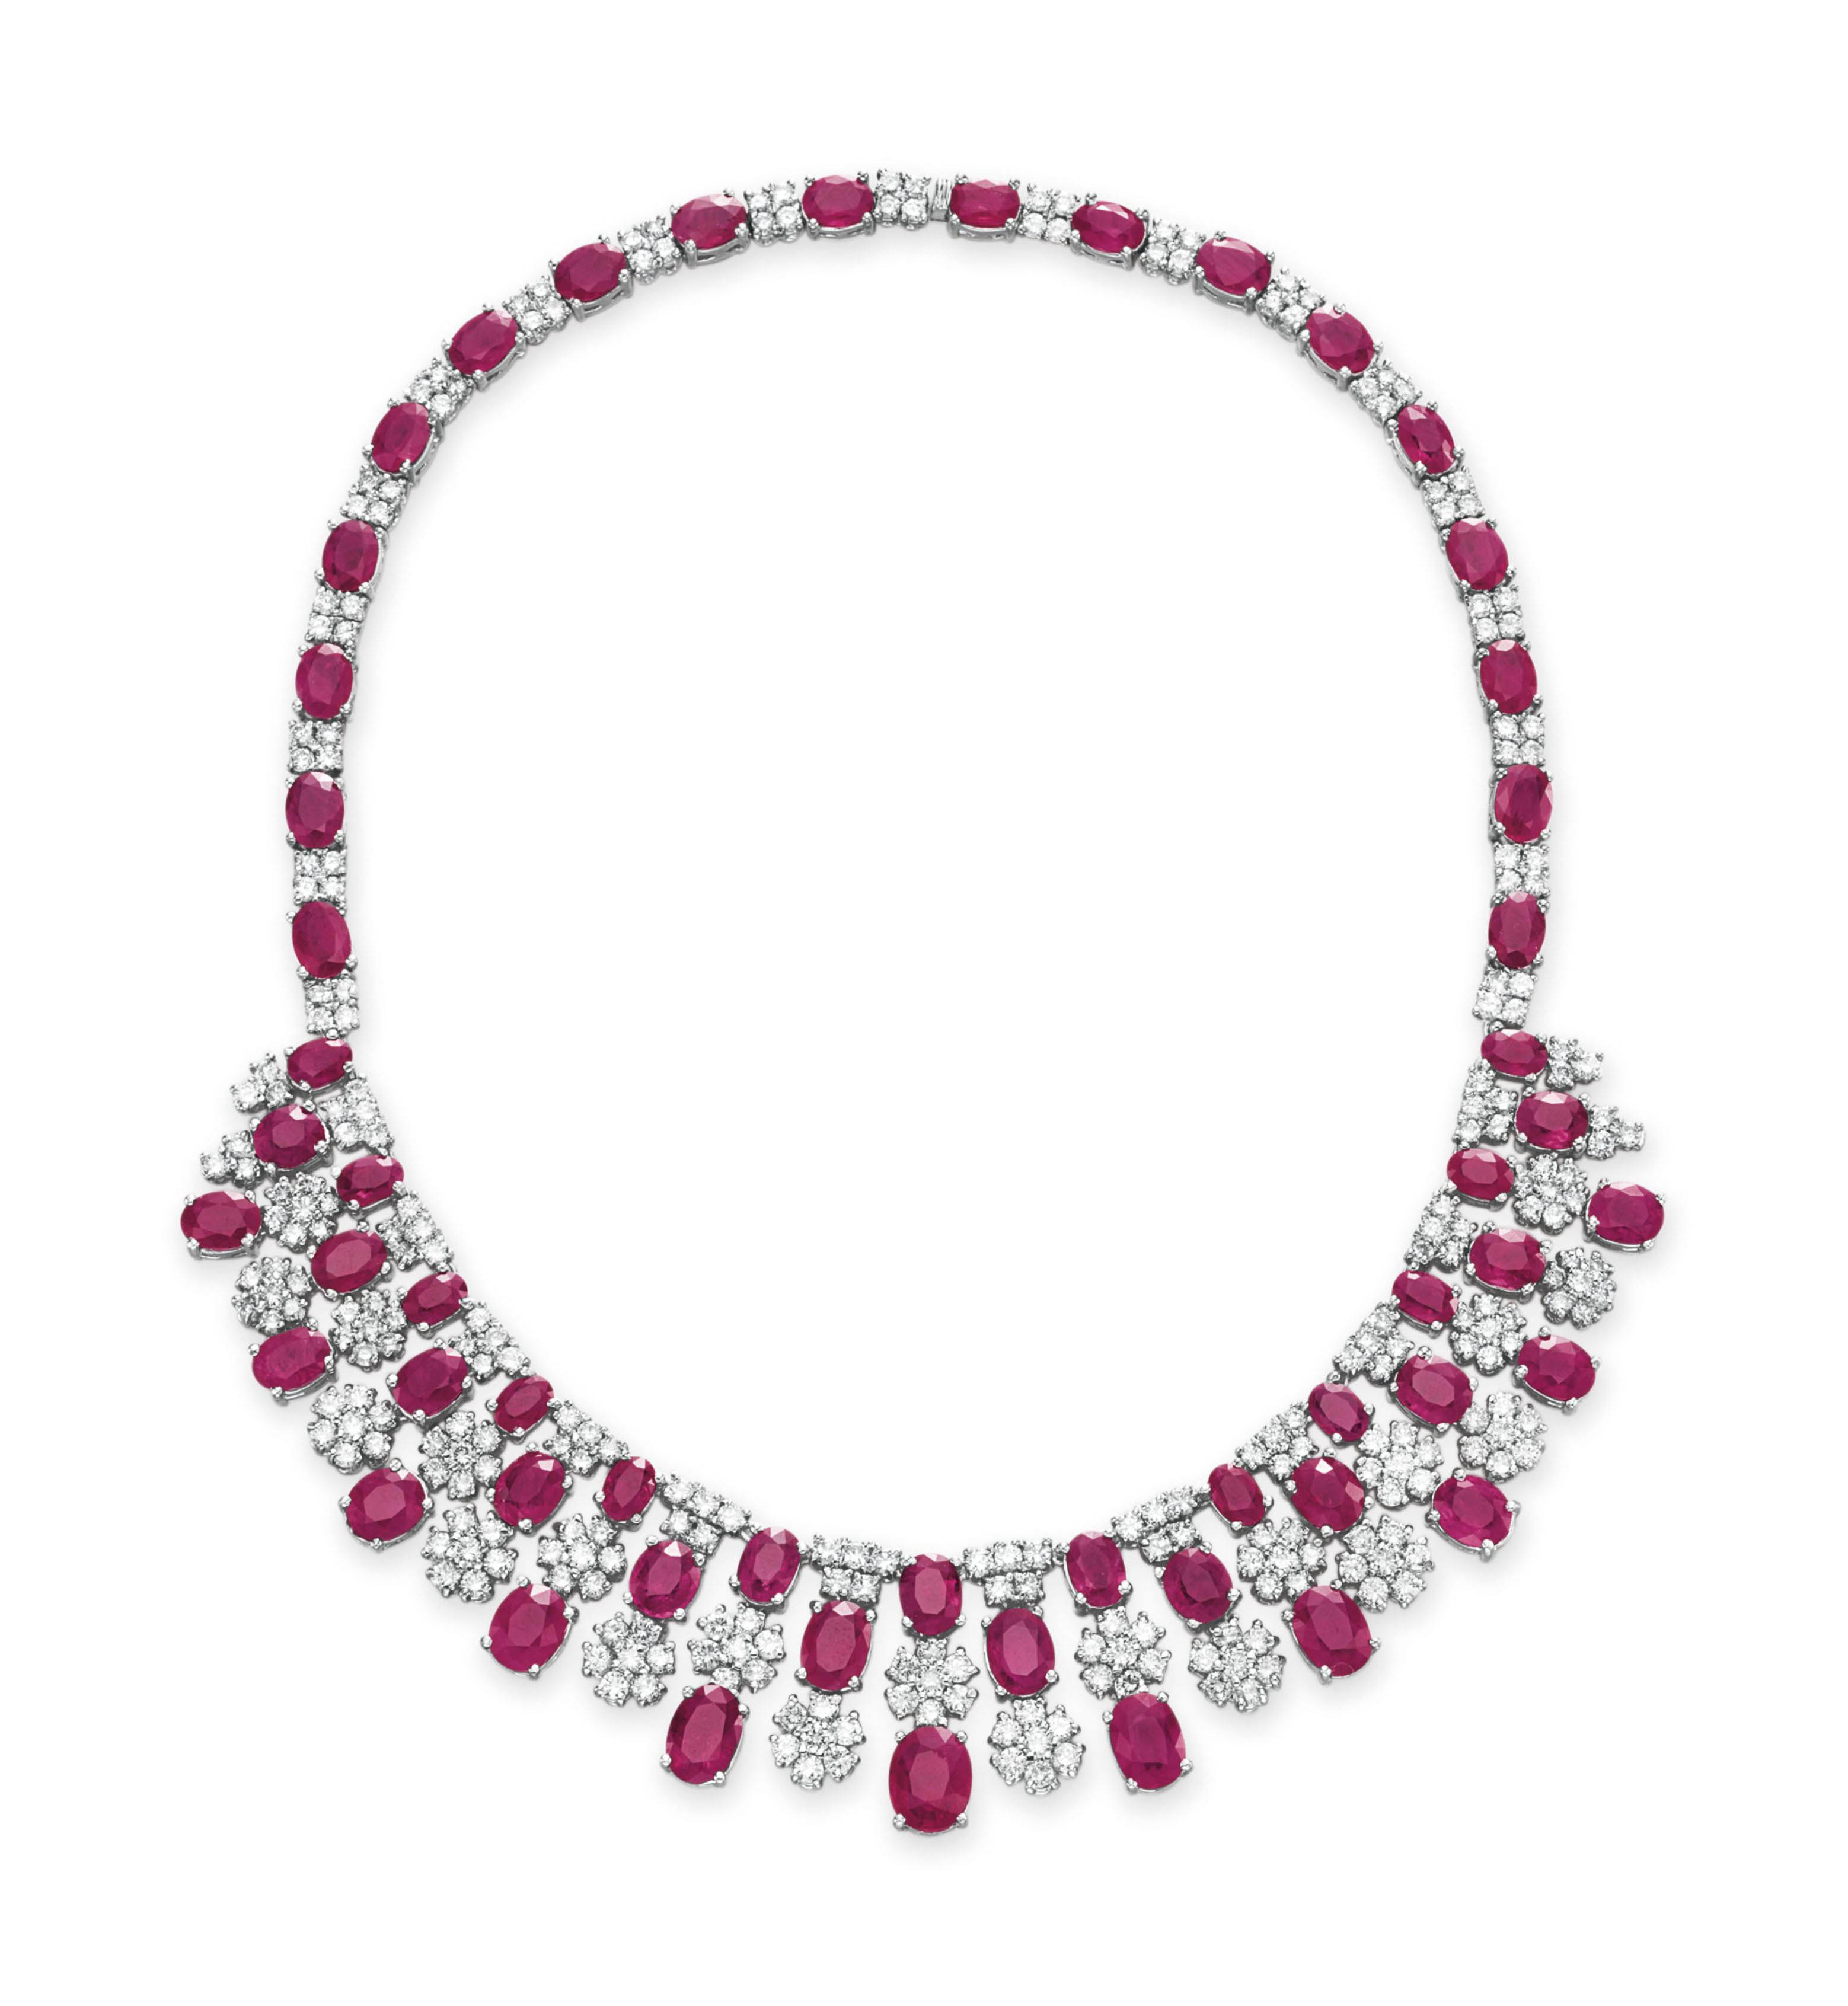 A RUBY AND DIAMOND NECKLACE, BY HOUSE OF TAYLOR